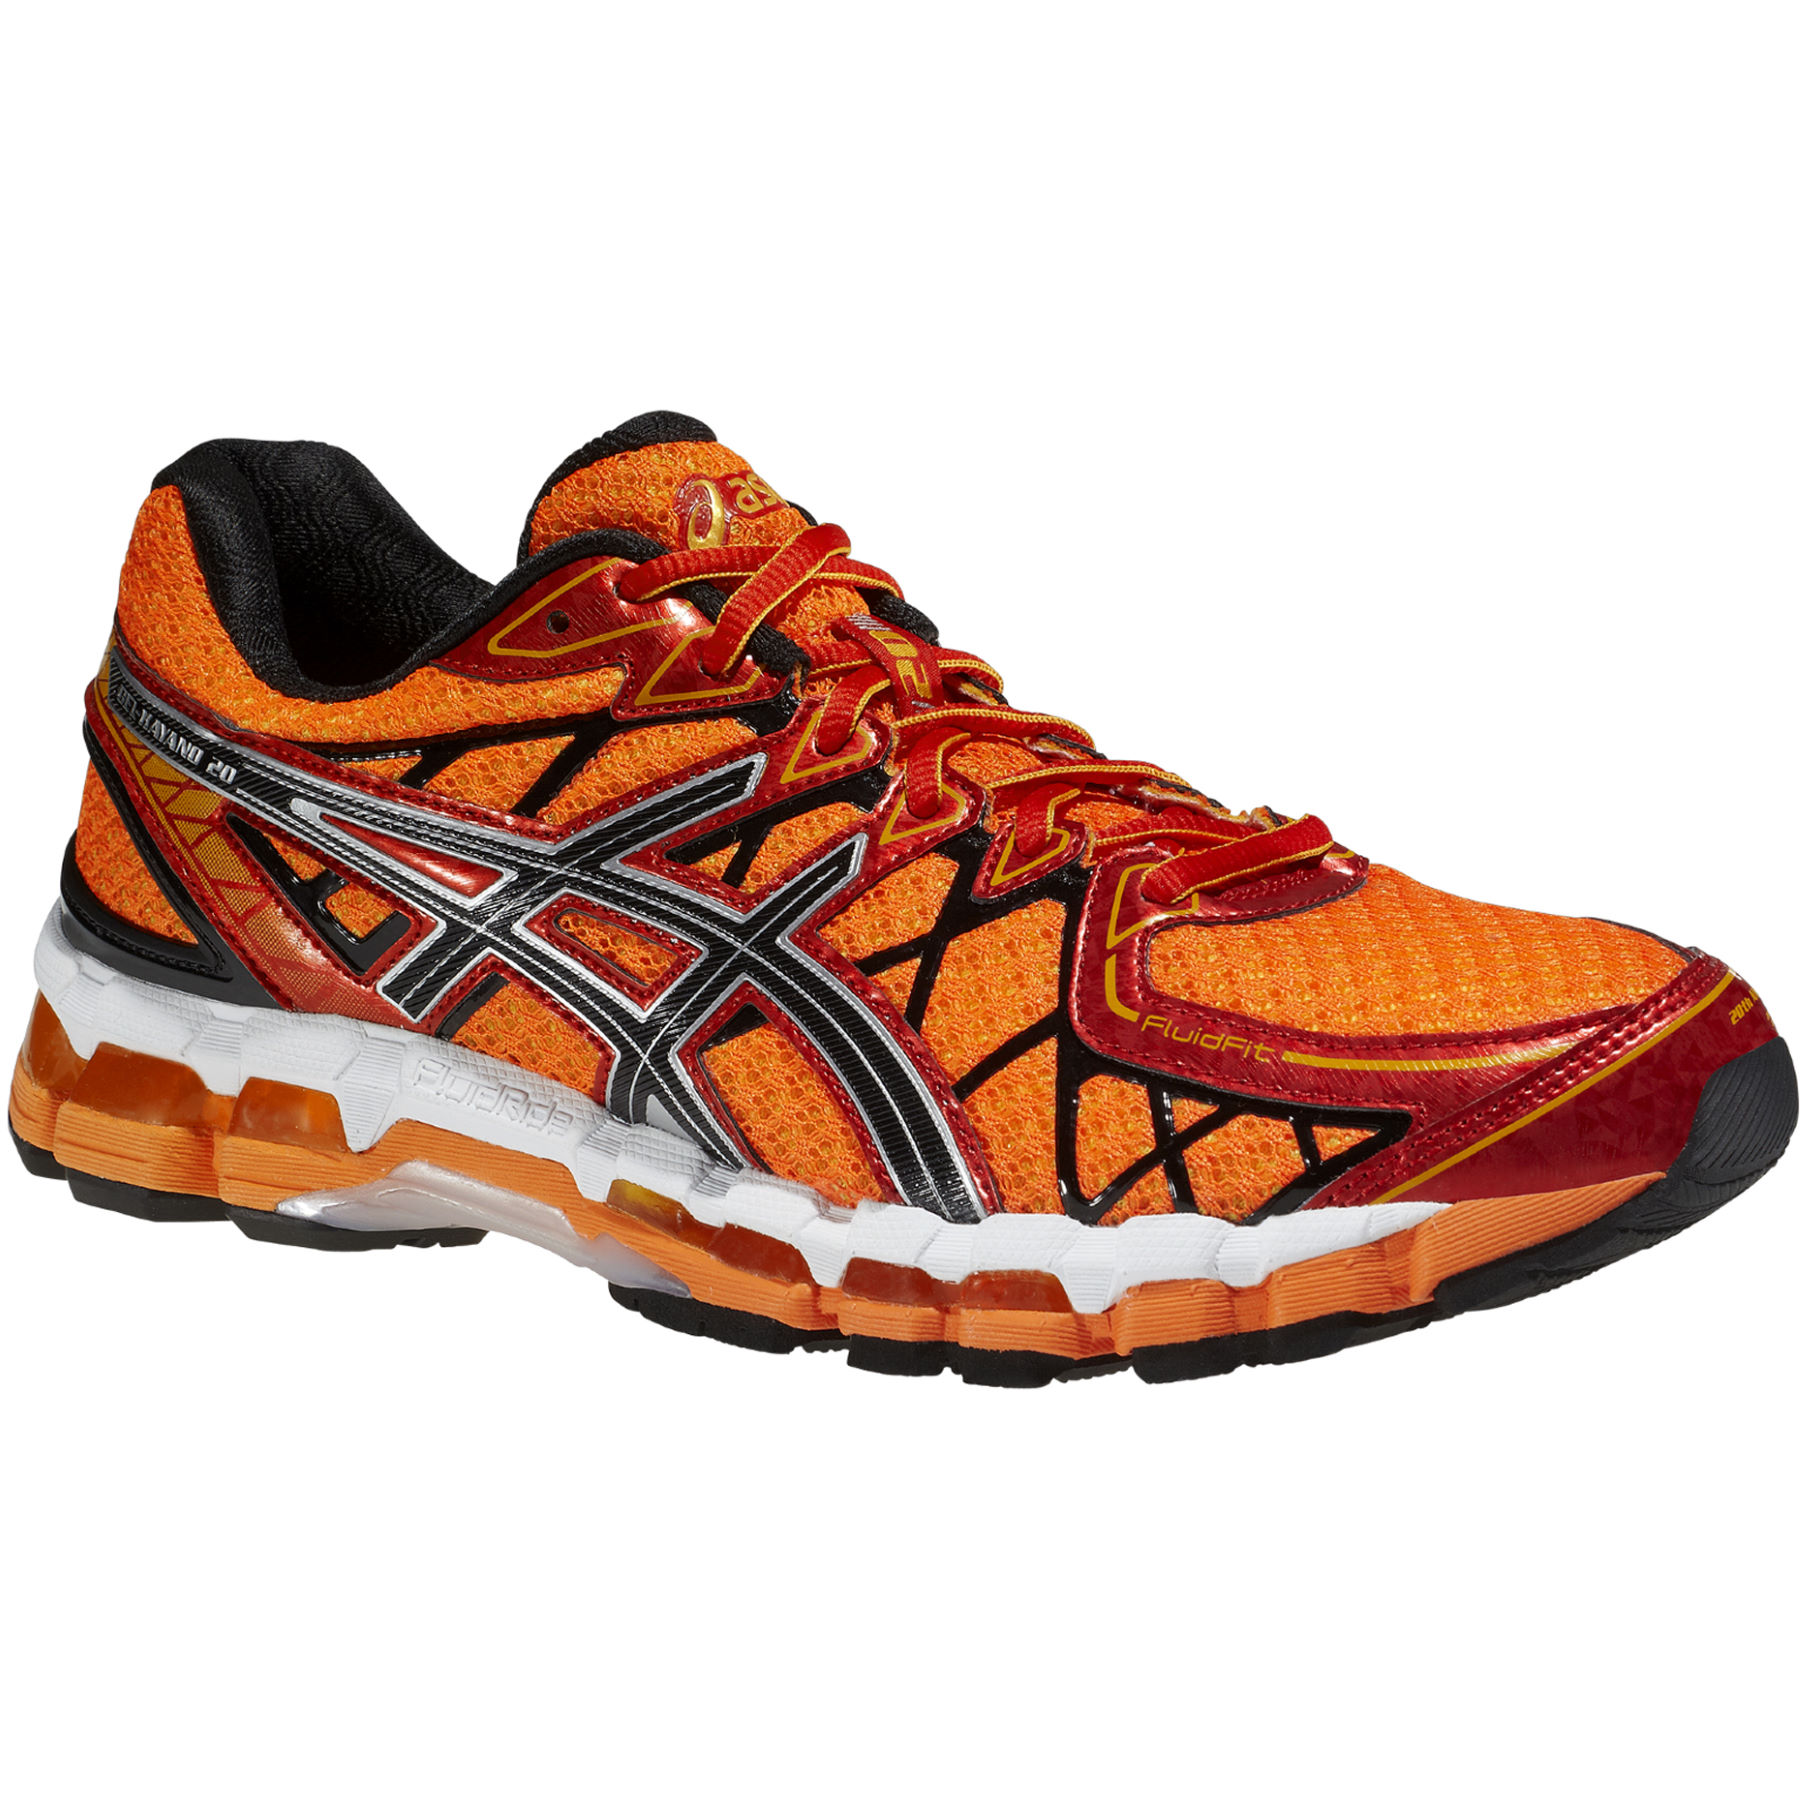 Zapatillas asics running 2014 zapatillas running asics gel - Asics Gel Kayano 20 Shoes Aw14 Asics Gel Kayano 20 Running Shoe